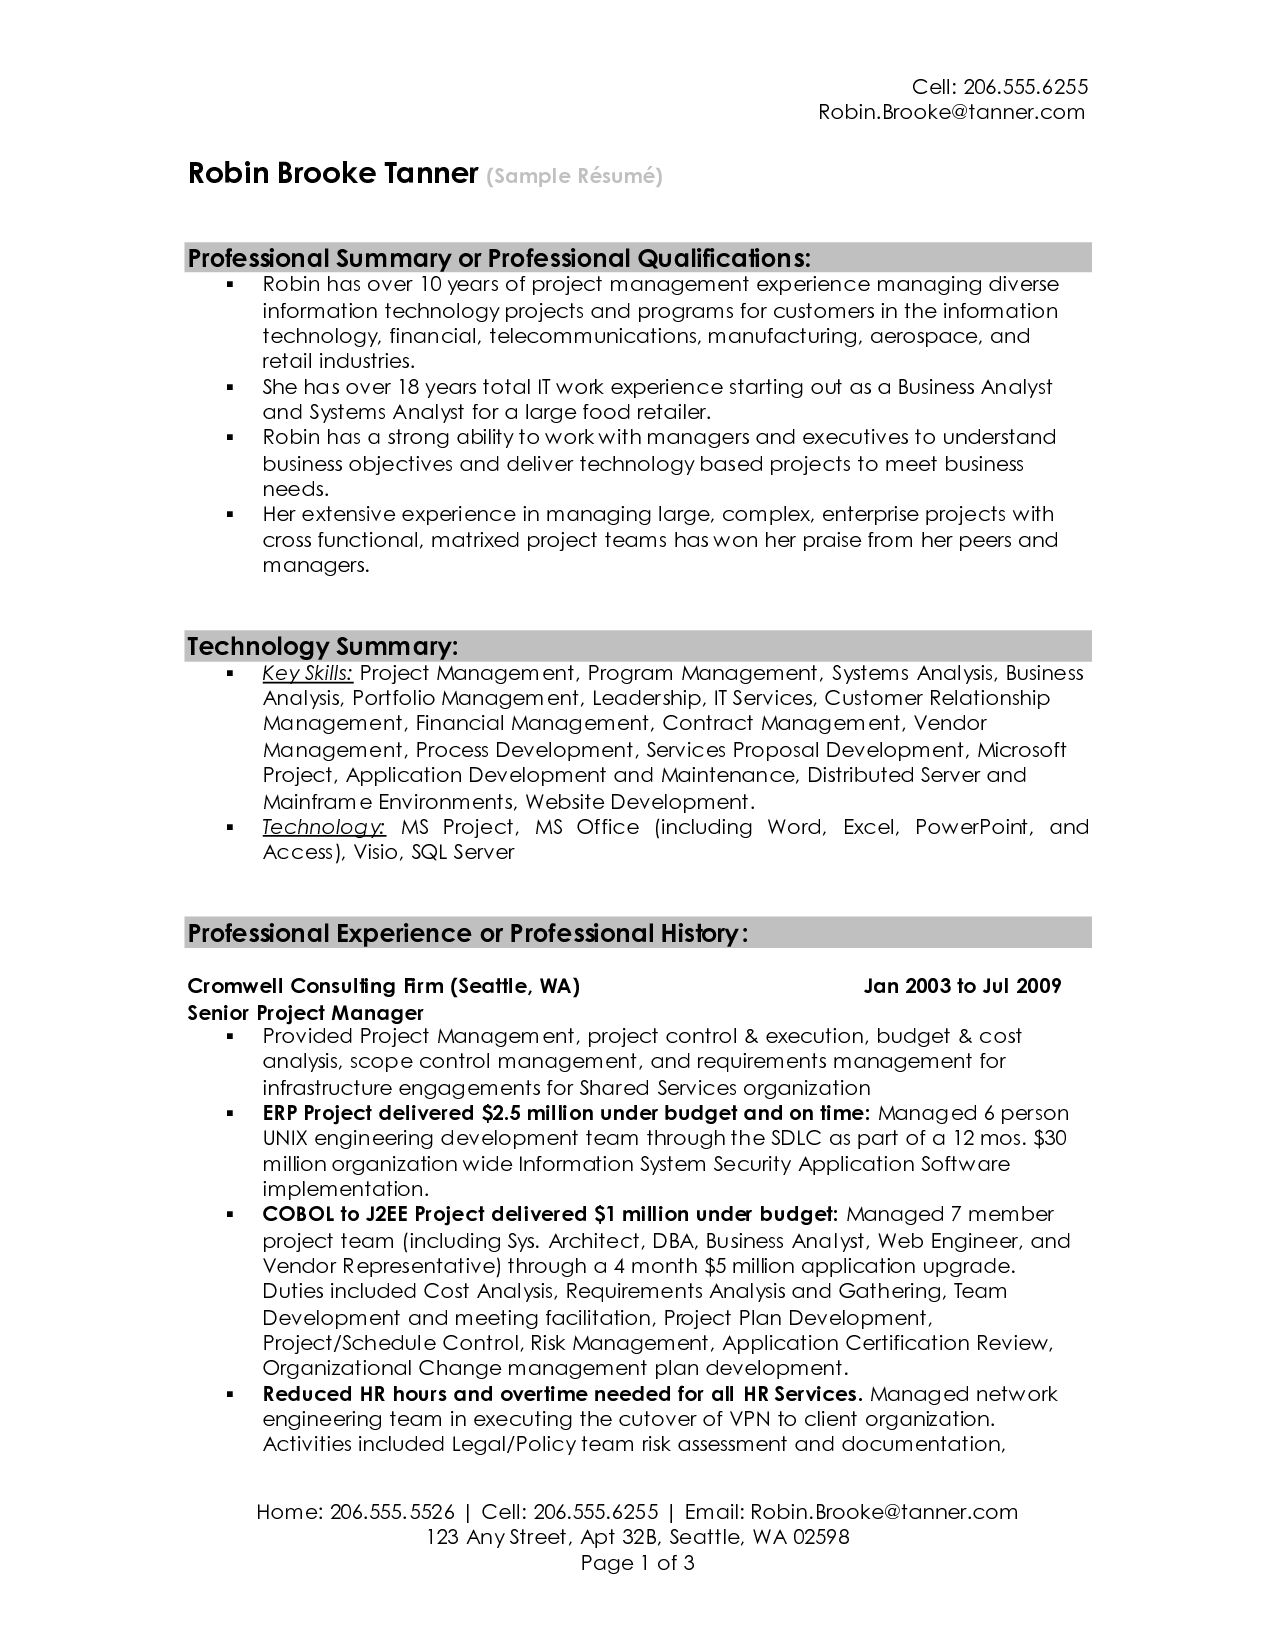 Example Of Professional Resume Professional Summary Resume Examples Professional Resume Summary